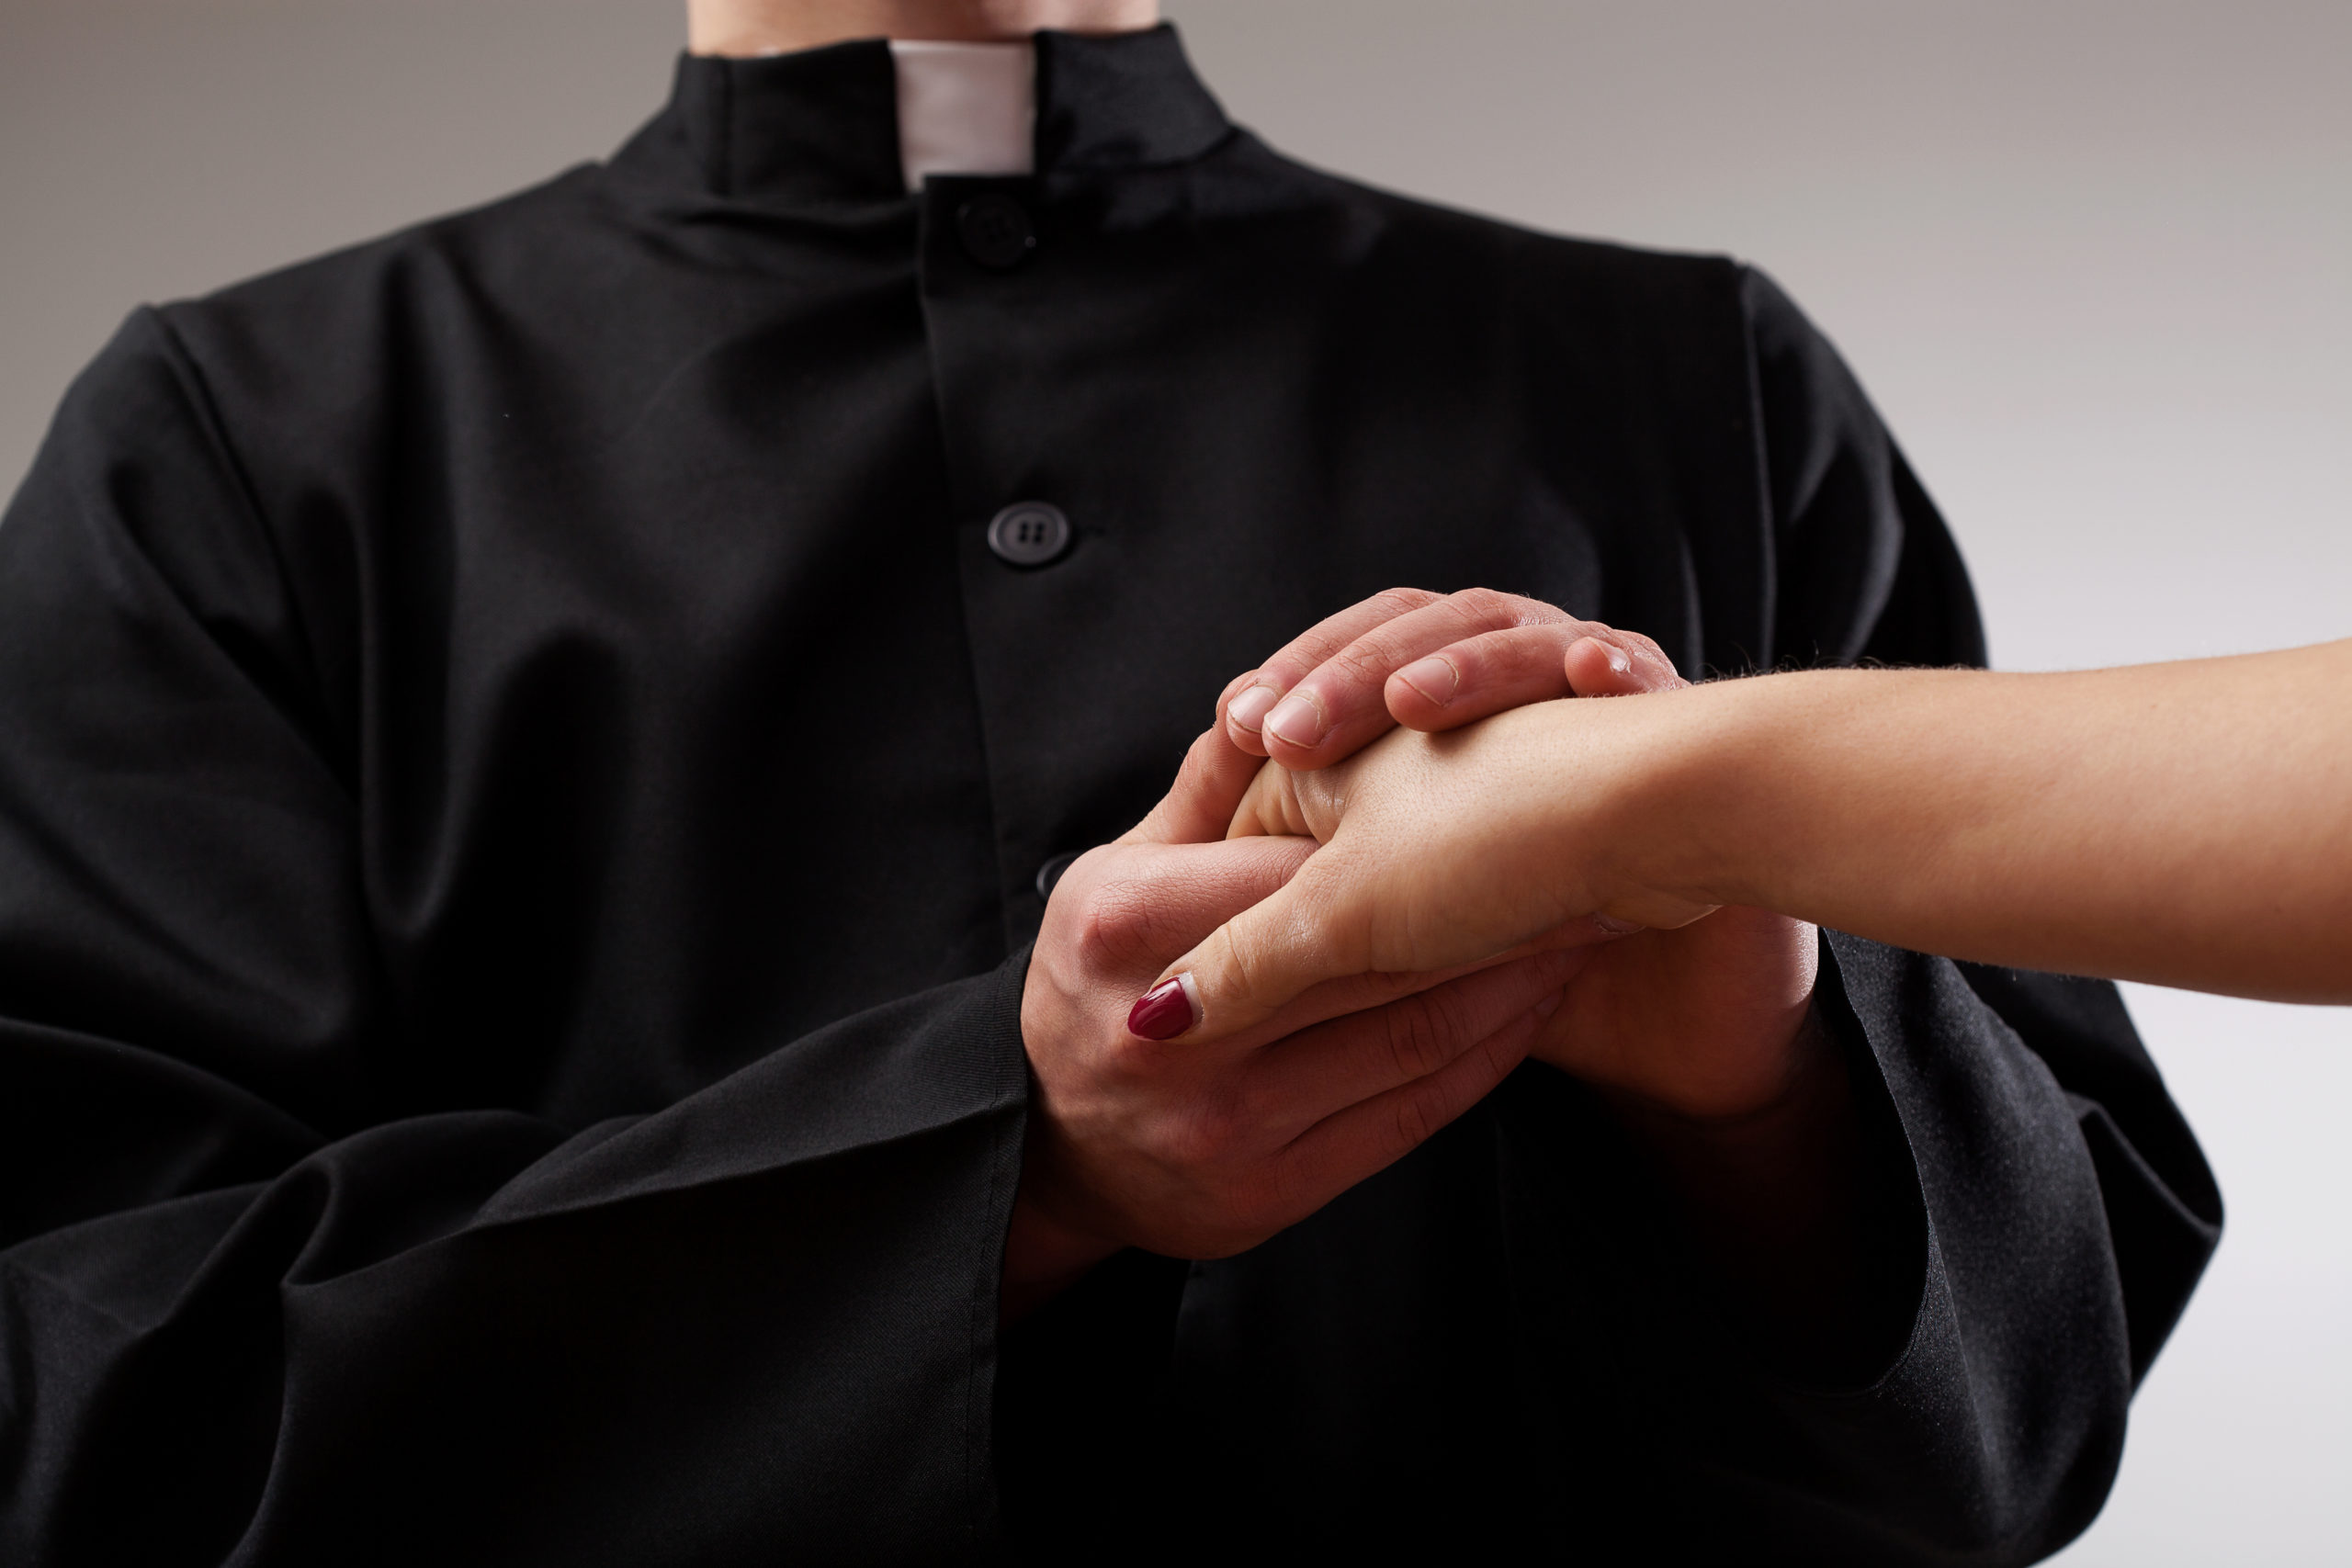 priest church religion celibacy married clergy marriage